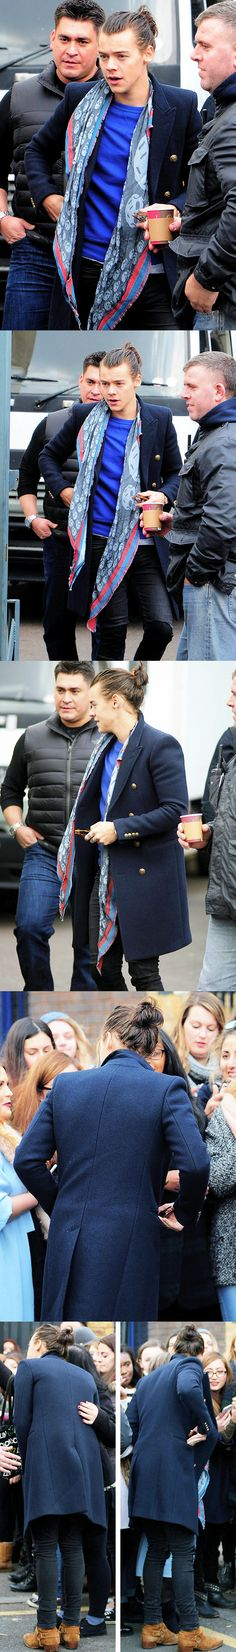 Harry Styles is prettier and more fashionable then me. Surprisingly I'm ok with it.